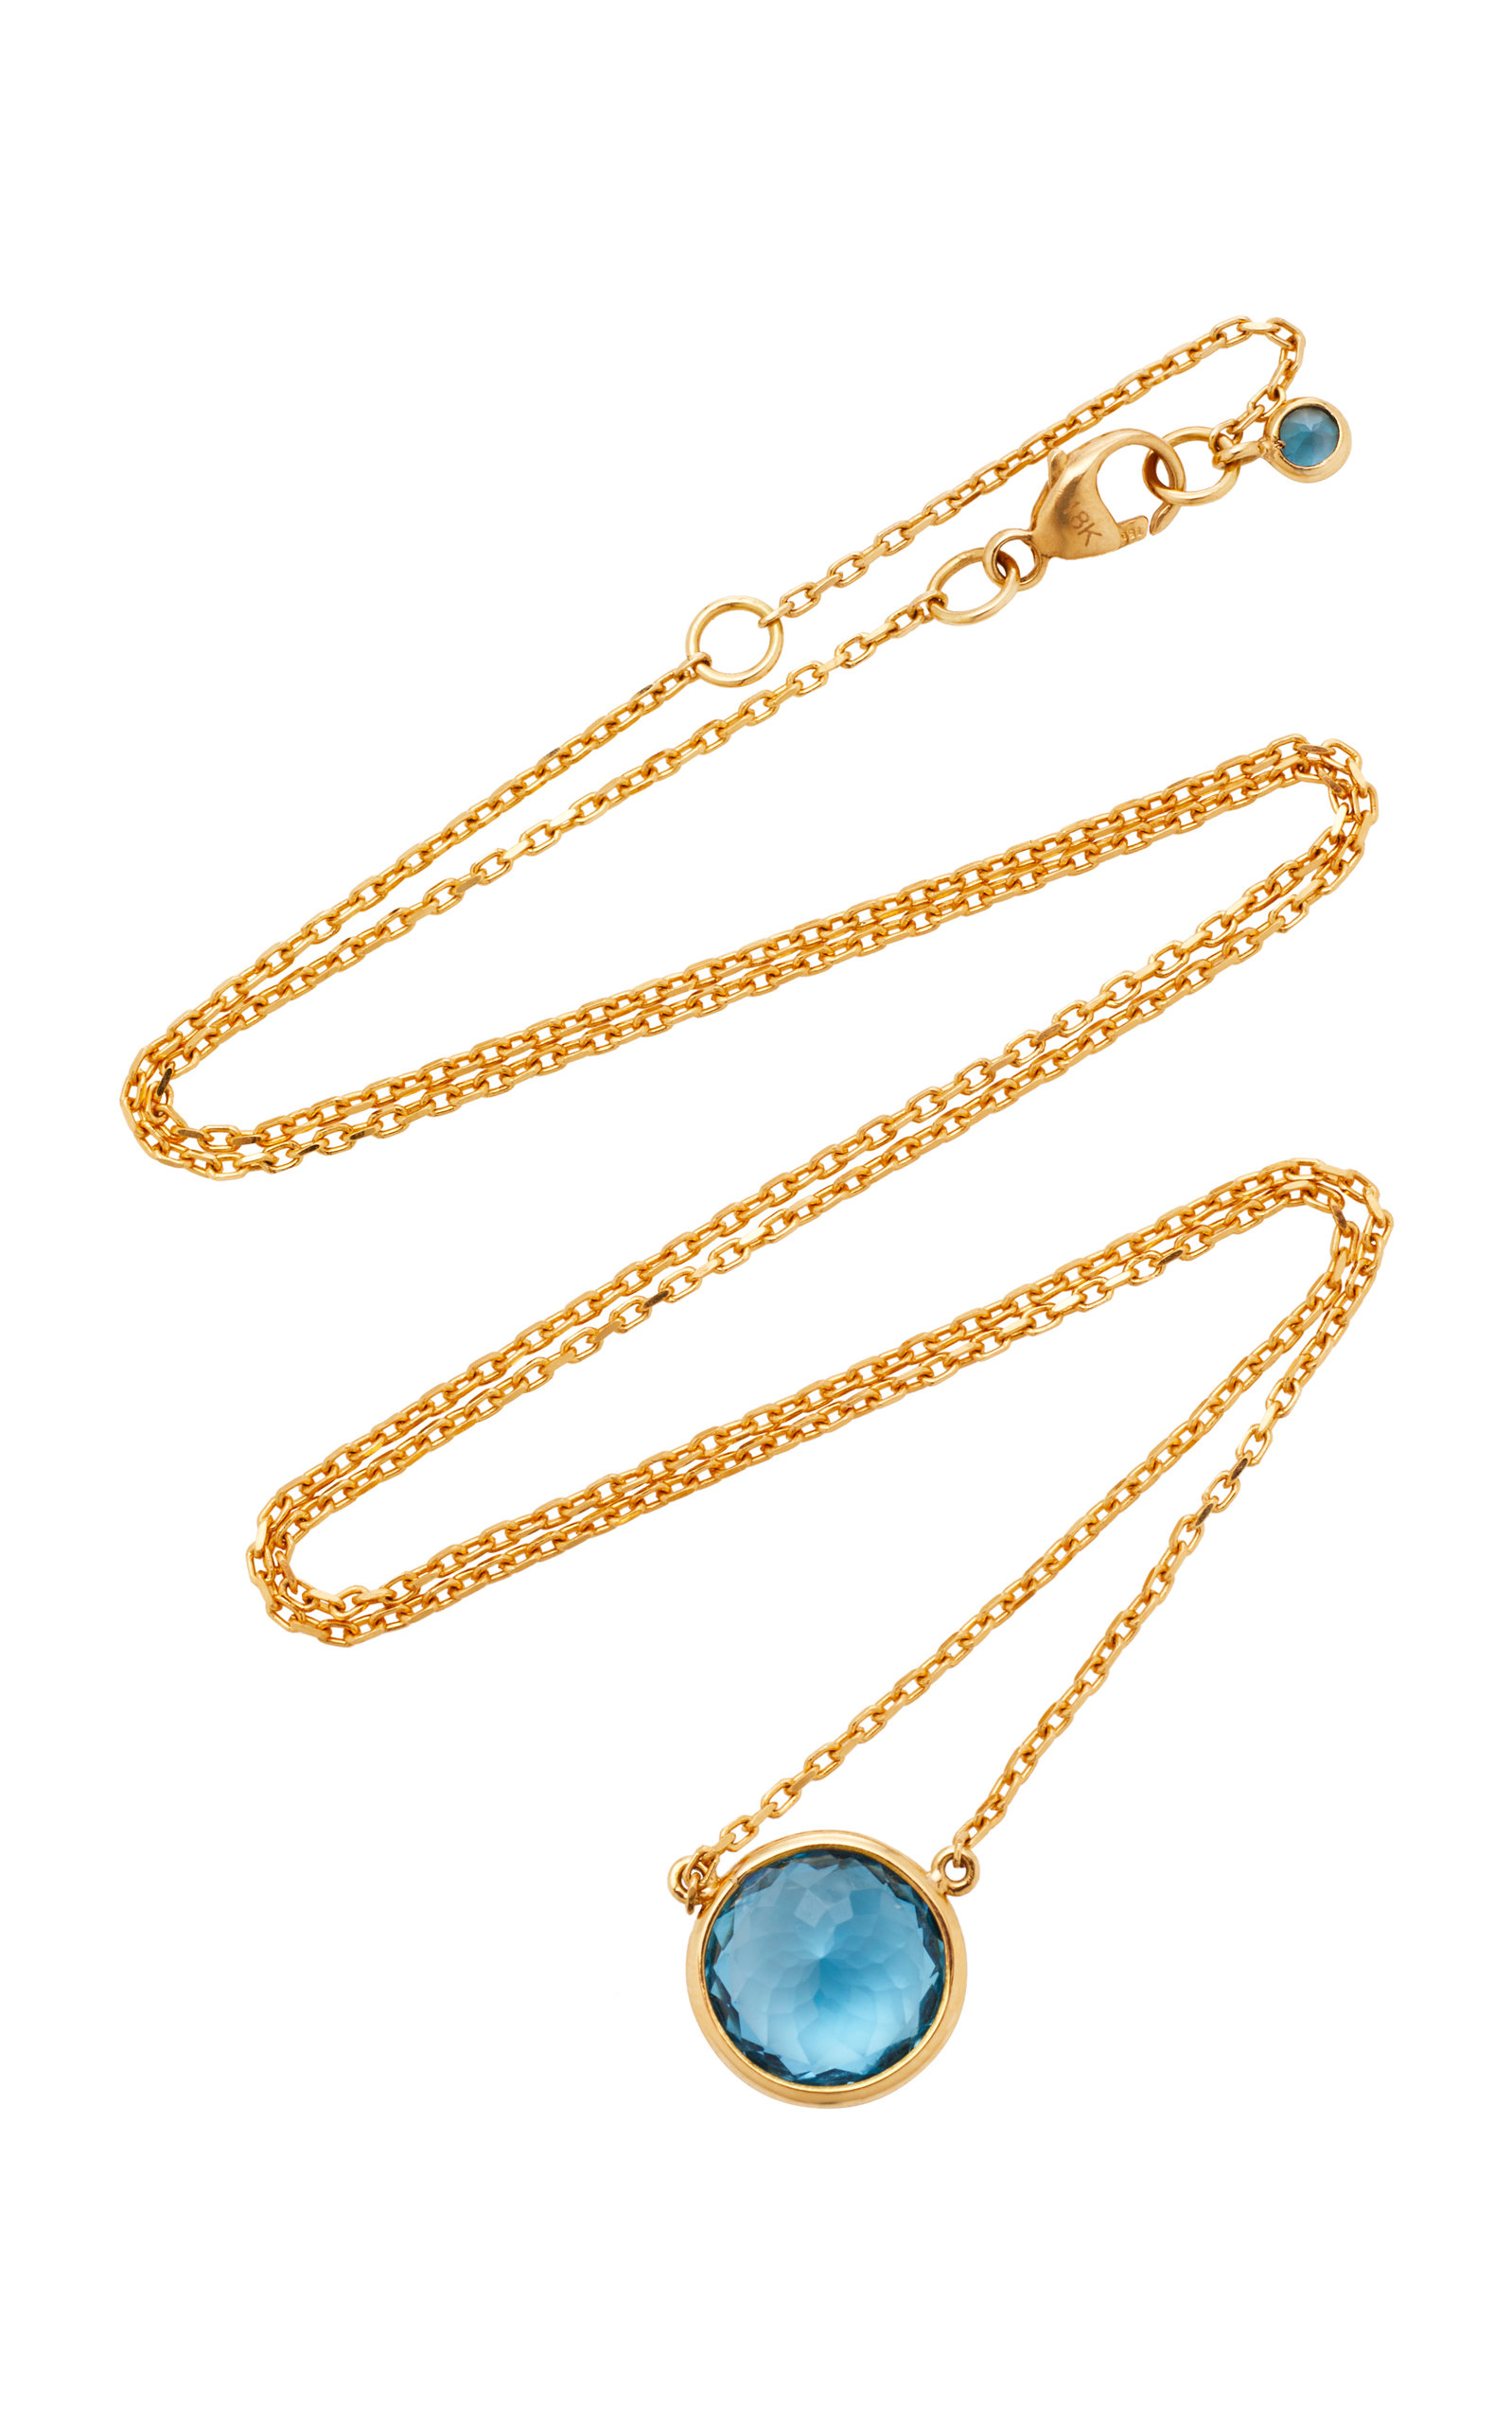 YI COLLECTION 18K GOLD TOPAZ NECKLACE